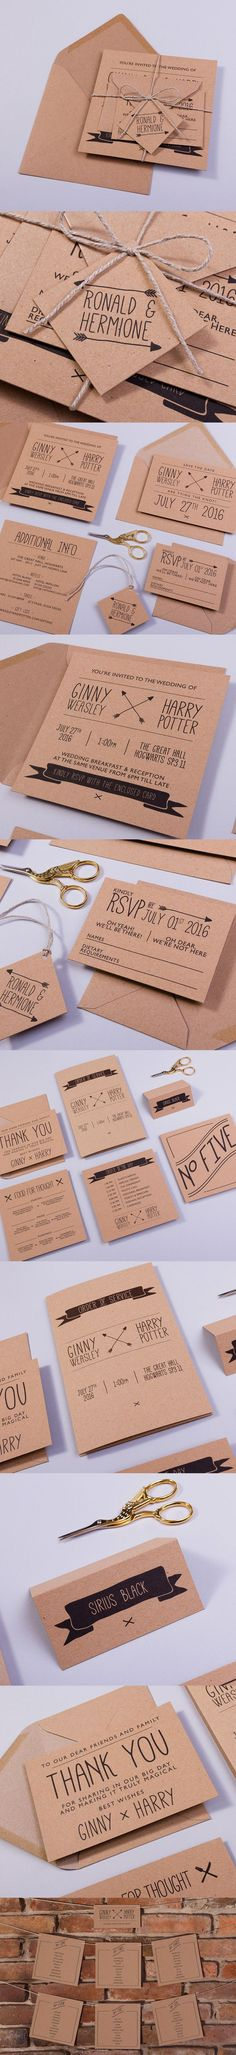 movie ticket stub wedding invitation%0A THE BURROW  loosely based on a Harry Potter theme  this wedding invitation  and stationery